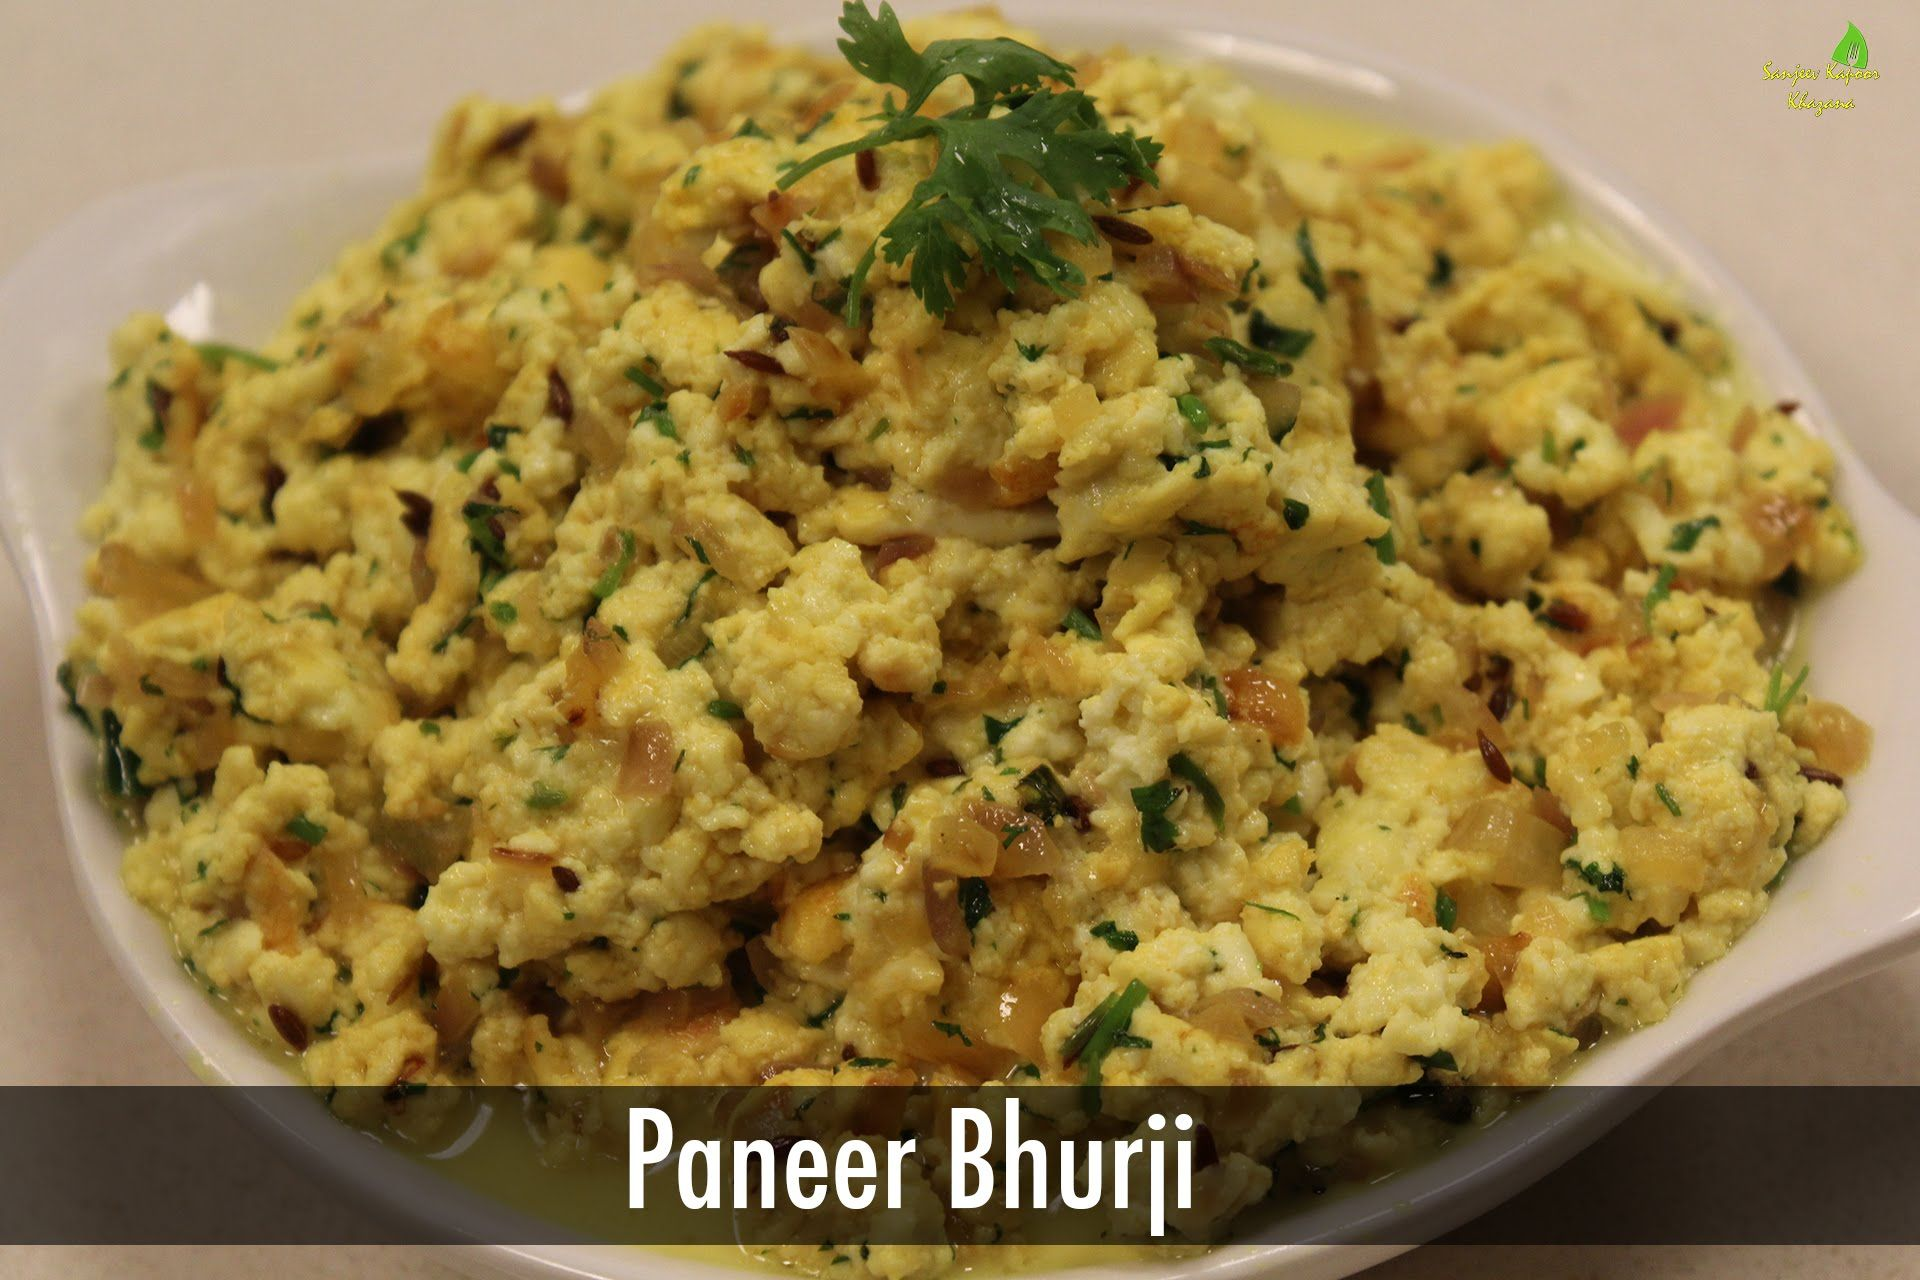 Paneer bhurji indian vegetarian recipes sanjeev kapoor khazana food paneer bhurji indian vegetarian recipes sanjeev kapoor khazana forumfinder Image collections